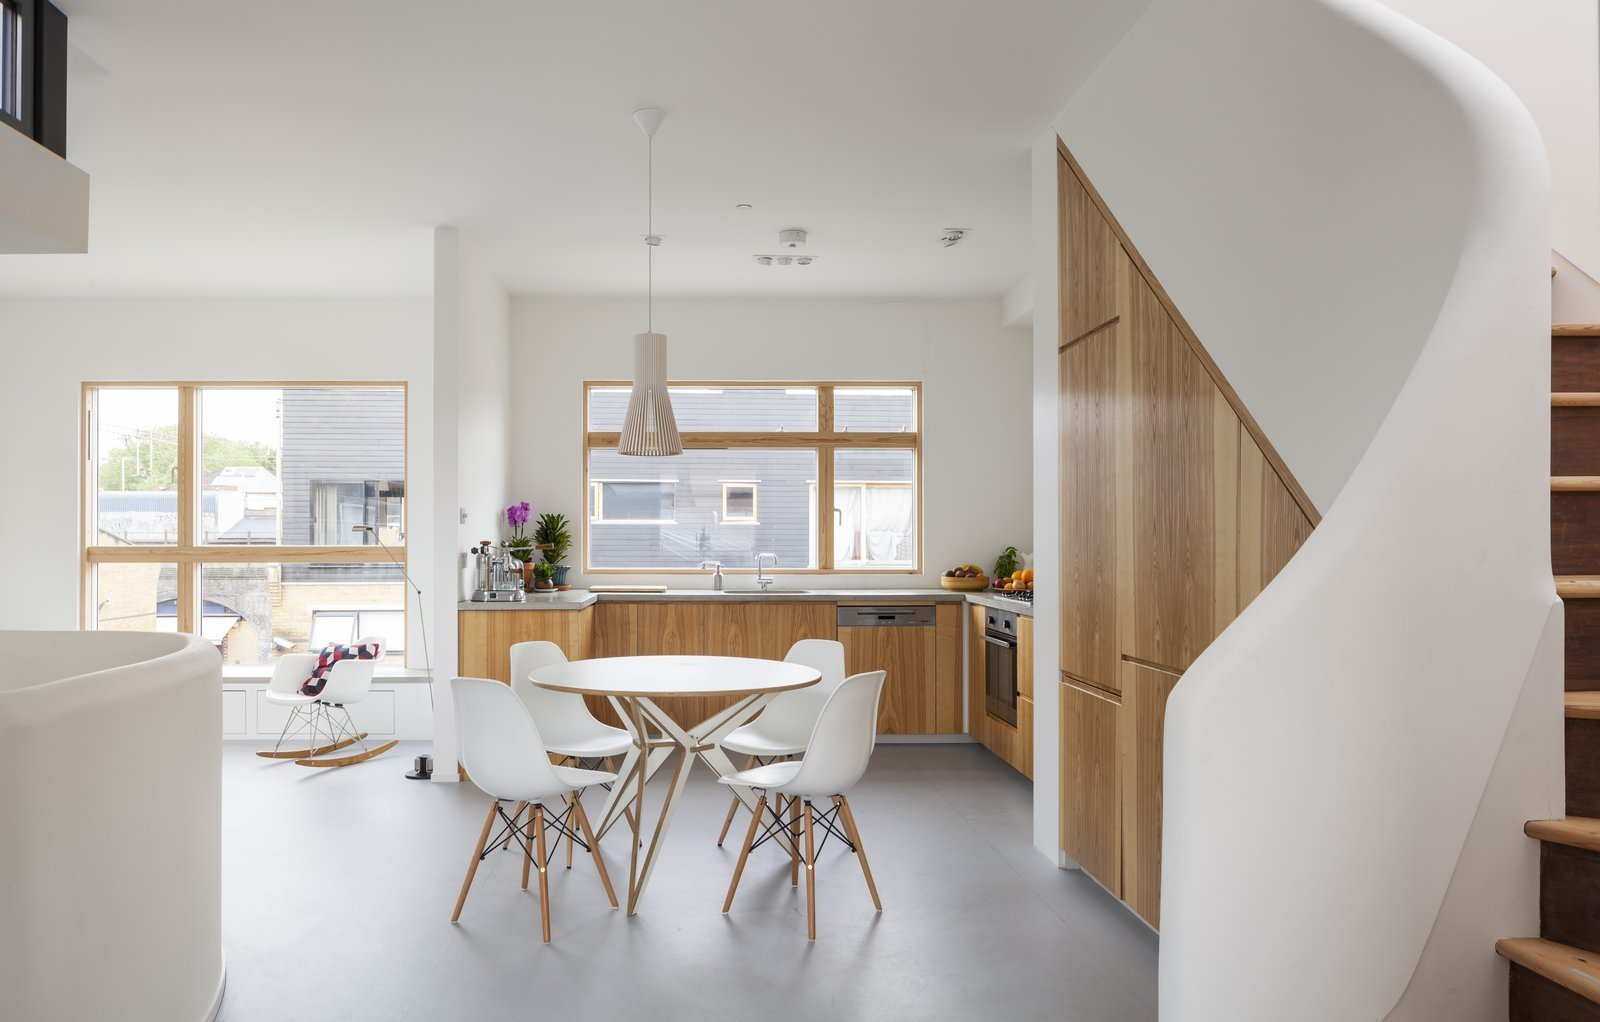 Photo 4 of 7 in 7 Design Tips For a Chef-Worthy Kitchen - Dwell